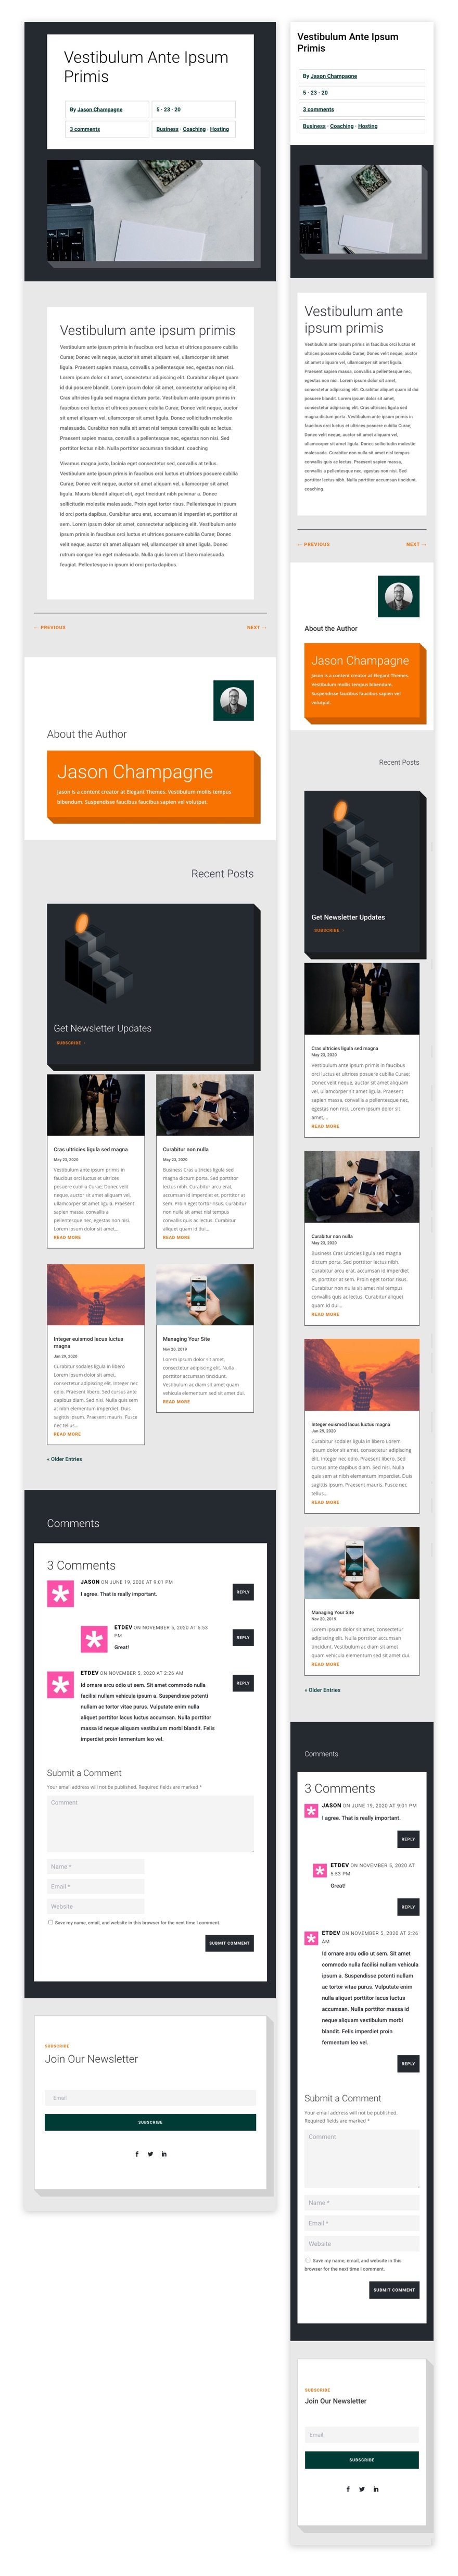 download-a-free-blog-post-template-for-divis-personal-loan-layout-pack-1 Download a FREE Blog Post Template for Divi's Personal Loan Layout Pack